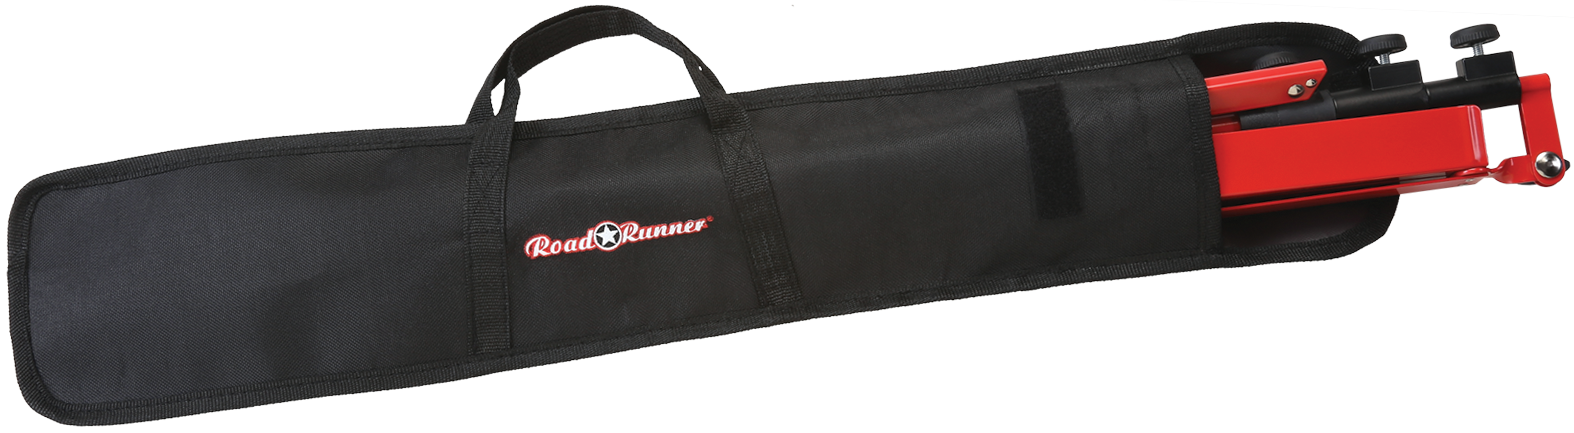 Wire Music Stand Carry Bag Road Runner RRWMSB